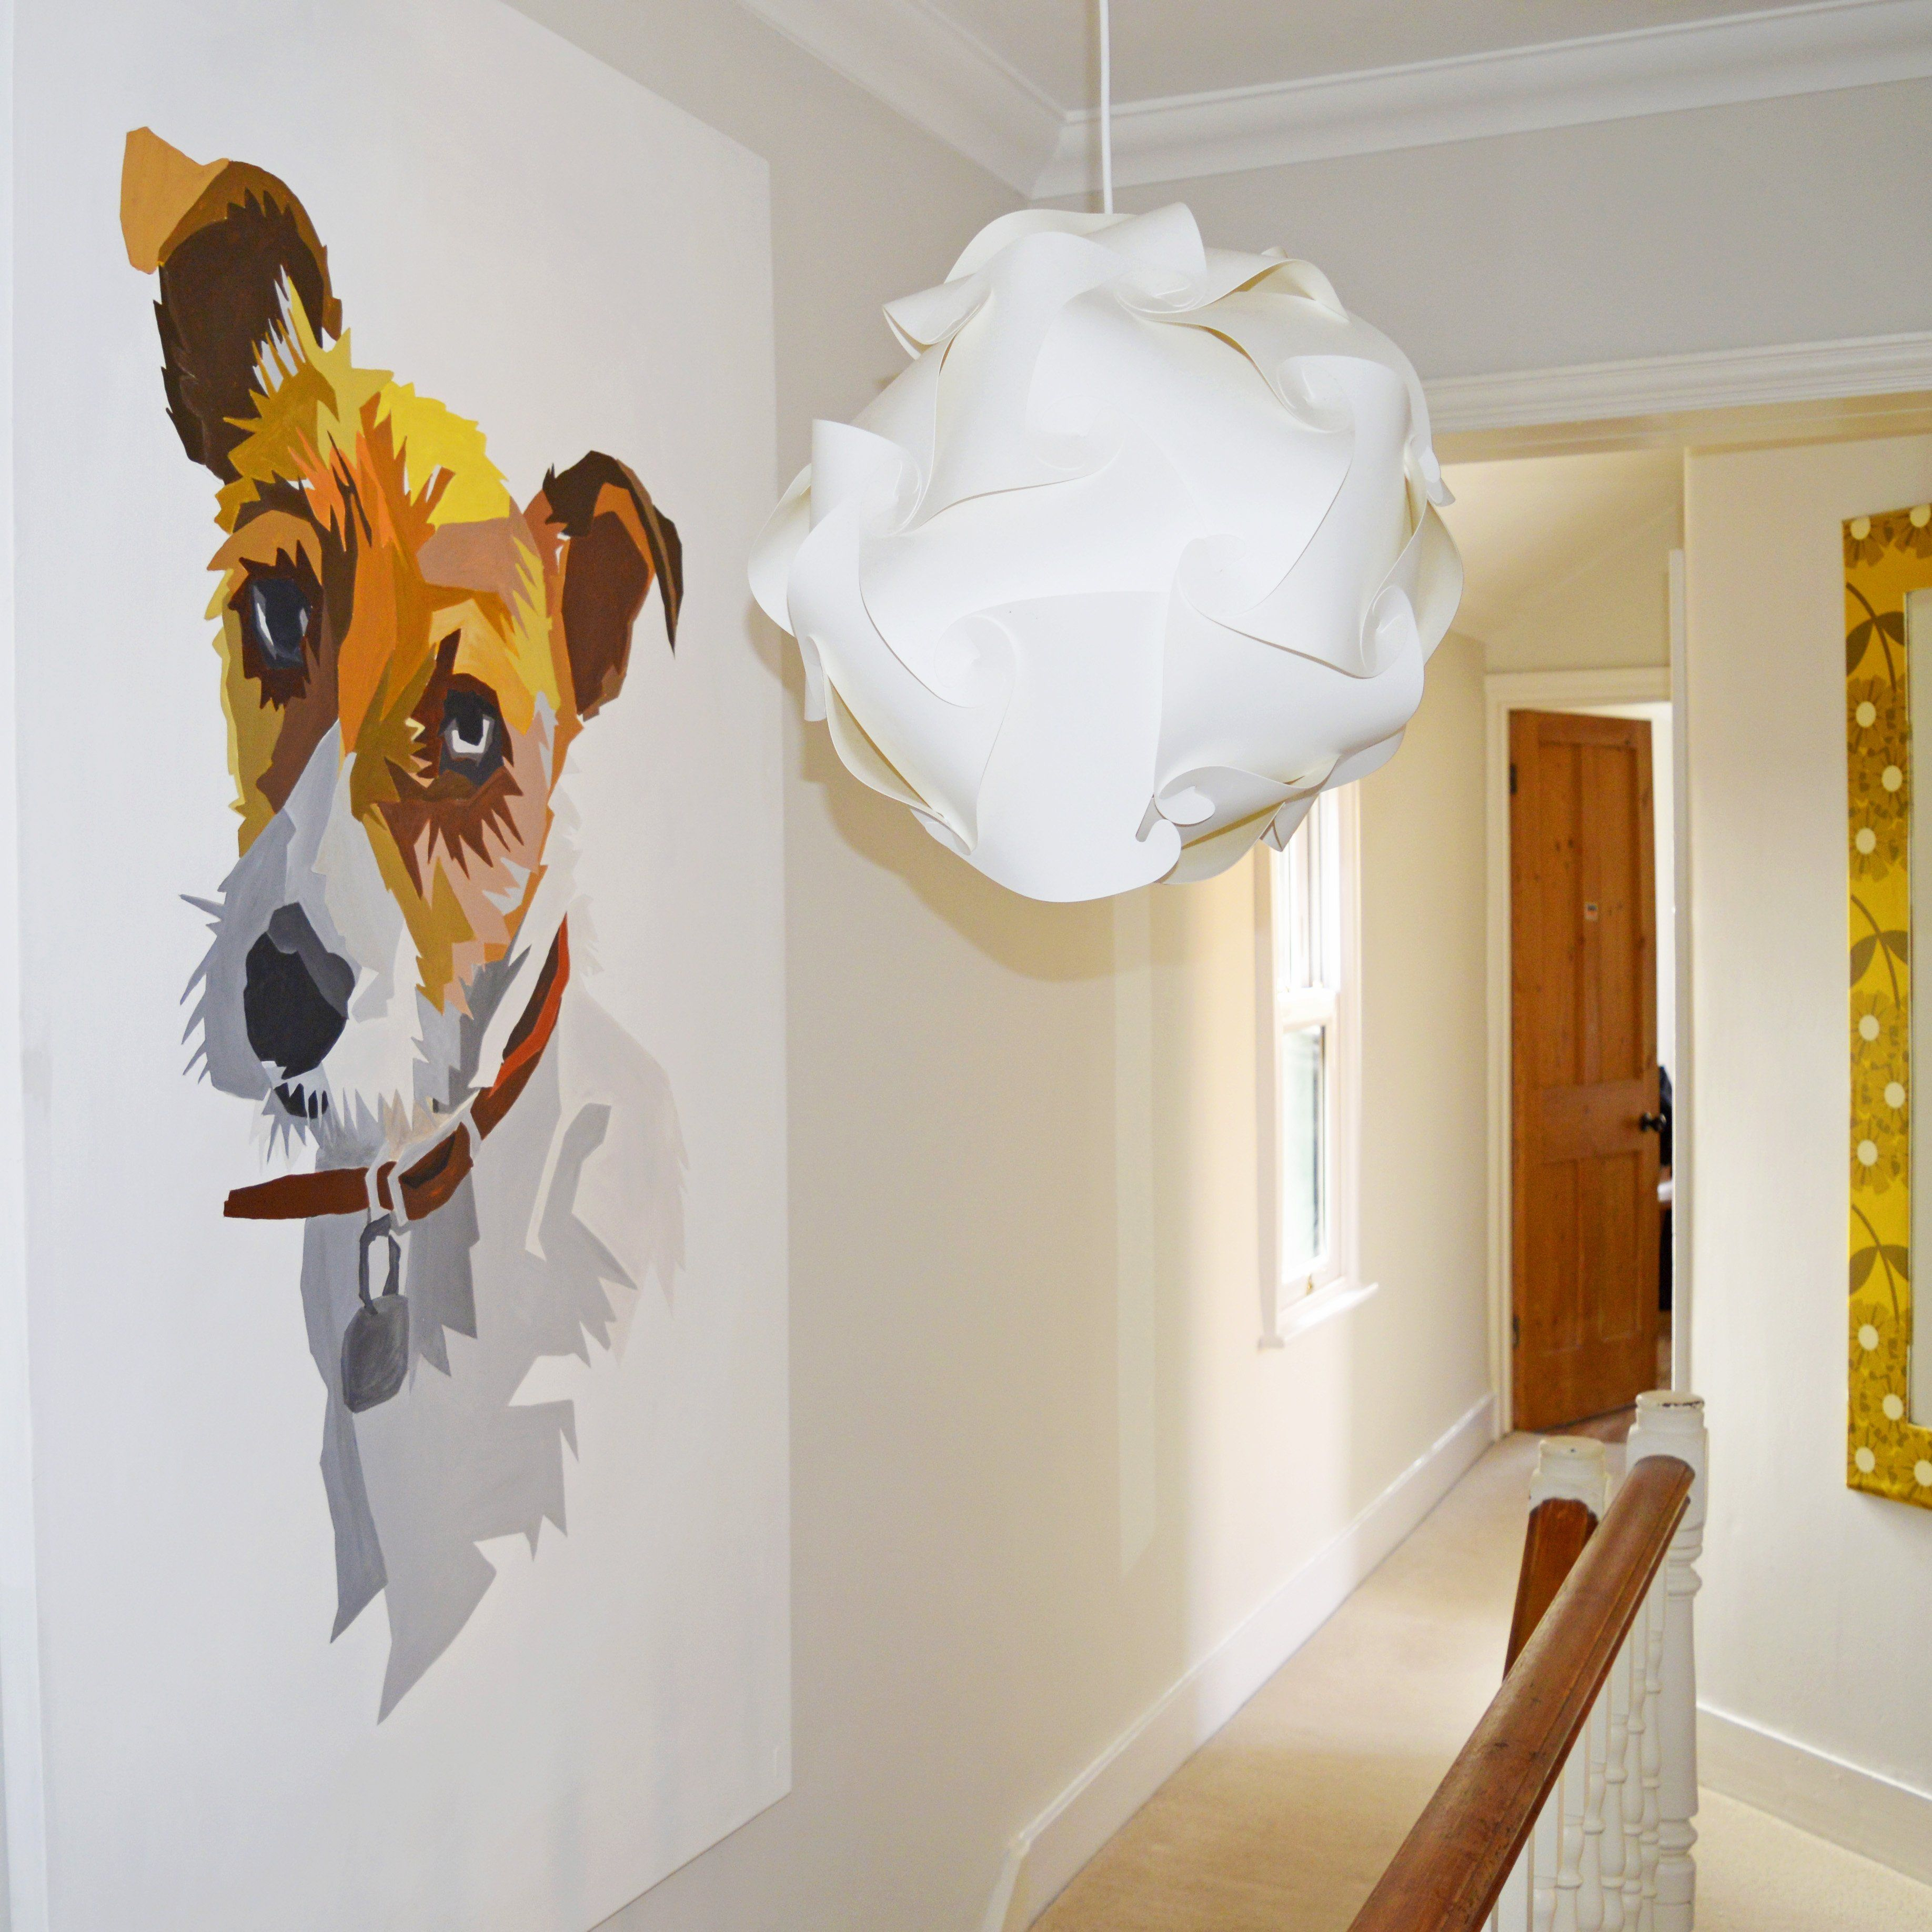 How To Paint The Giant Wall Portrait Your Pet Deserves